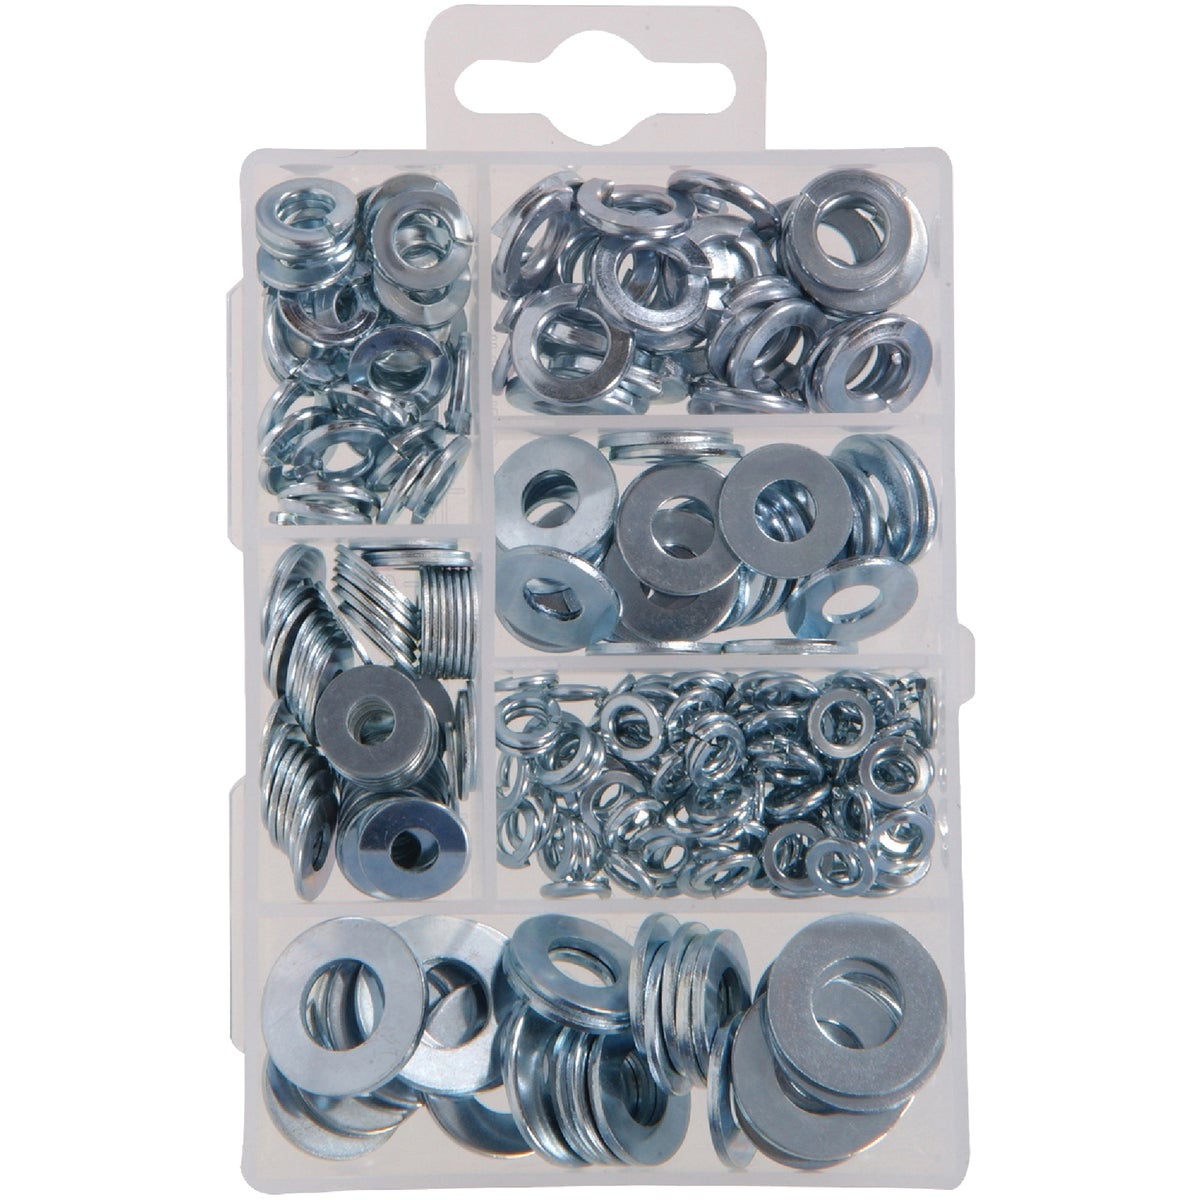 KIT FLAT LOCK AND WASHER - 130208 by Hillman Fastener